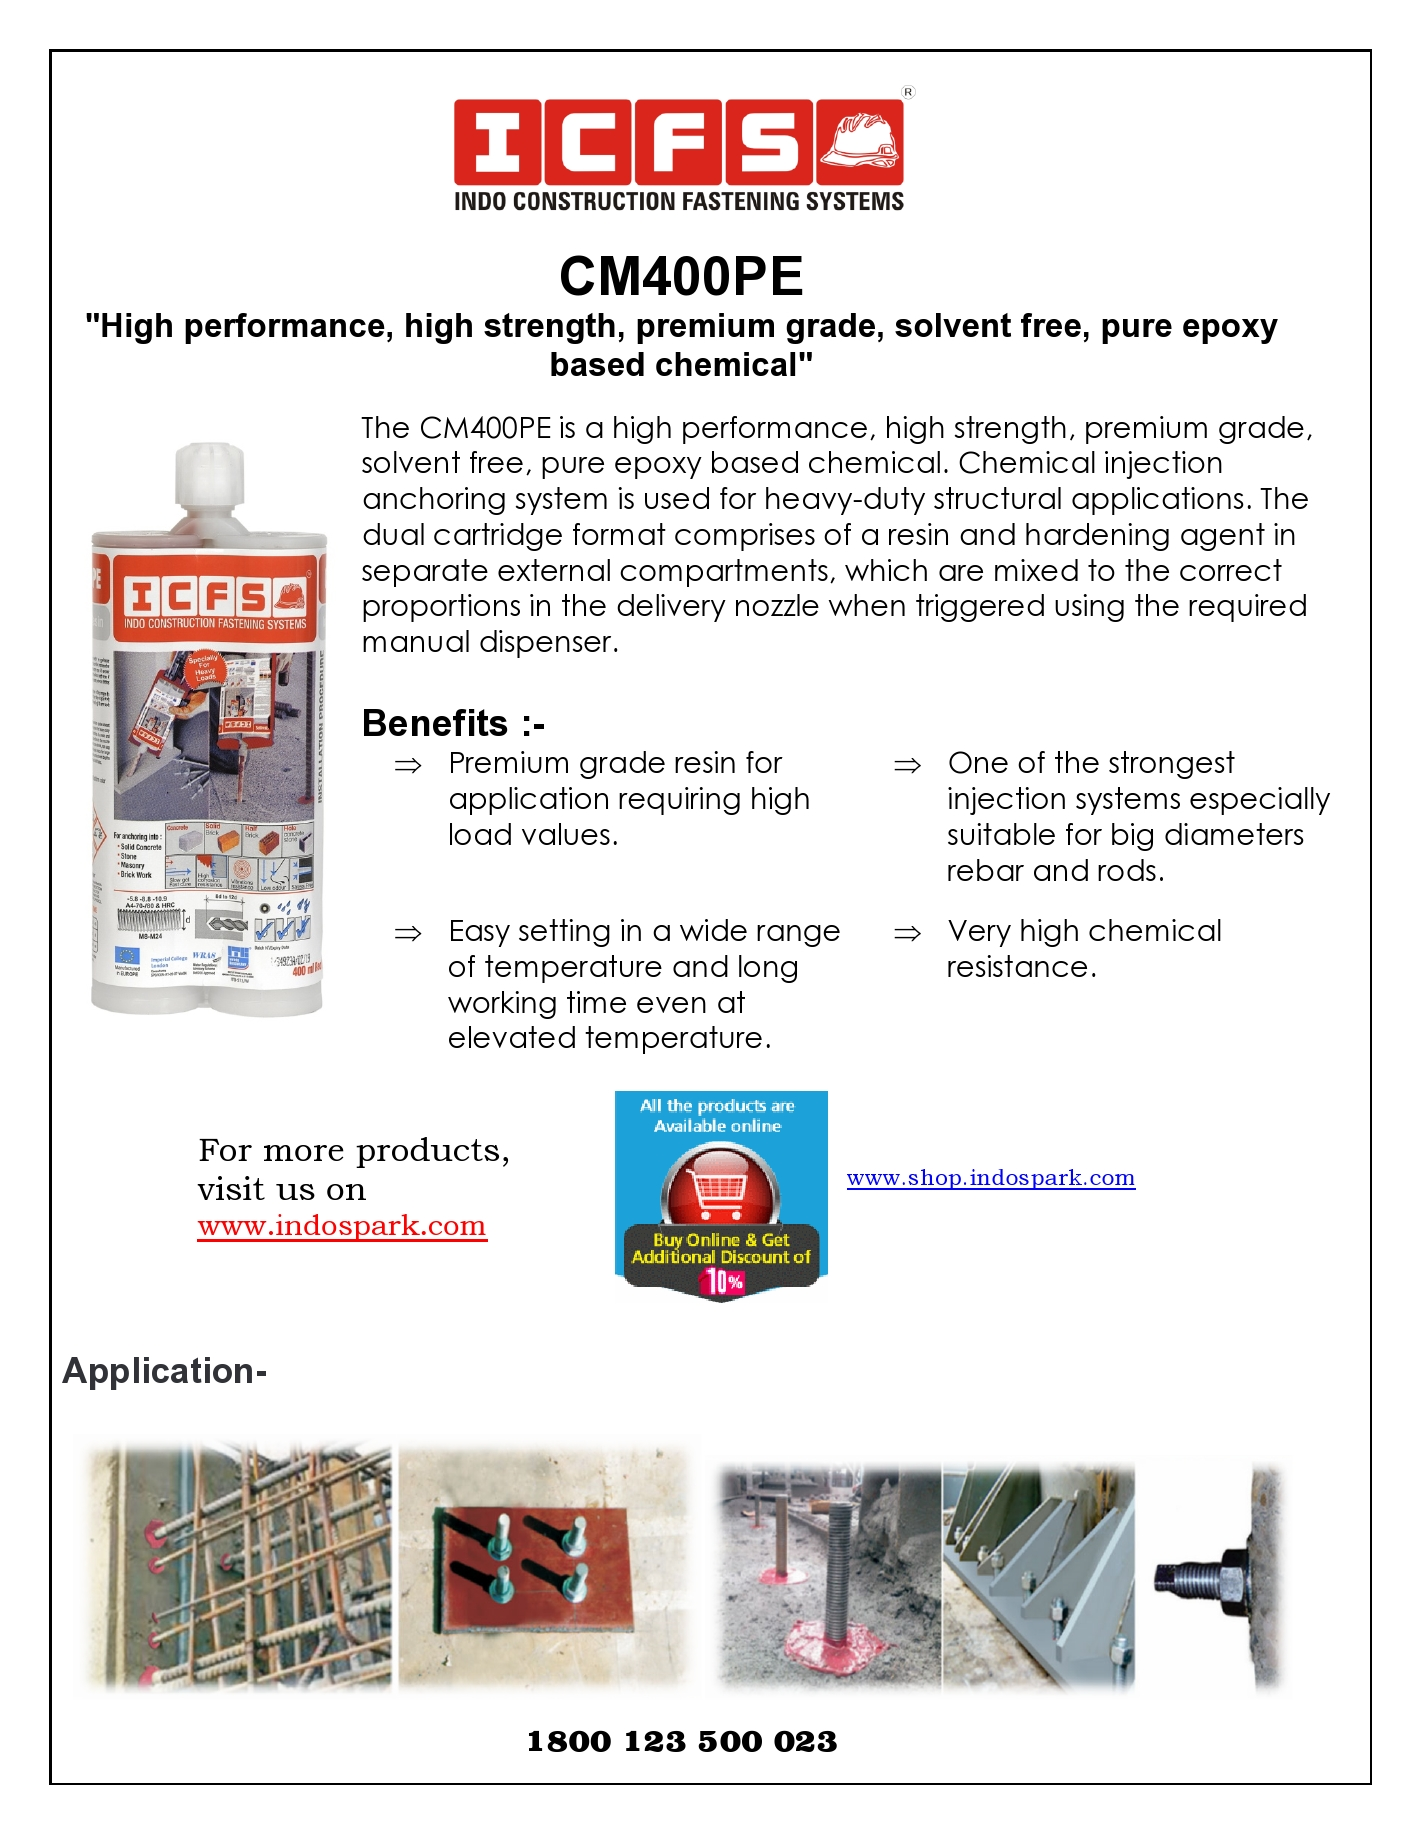 CM400PE_High performance, high strength, premium grade, solvent free, pure epoxy based chemical